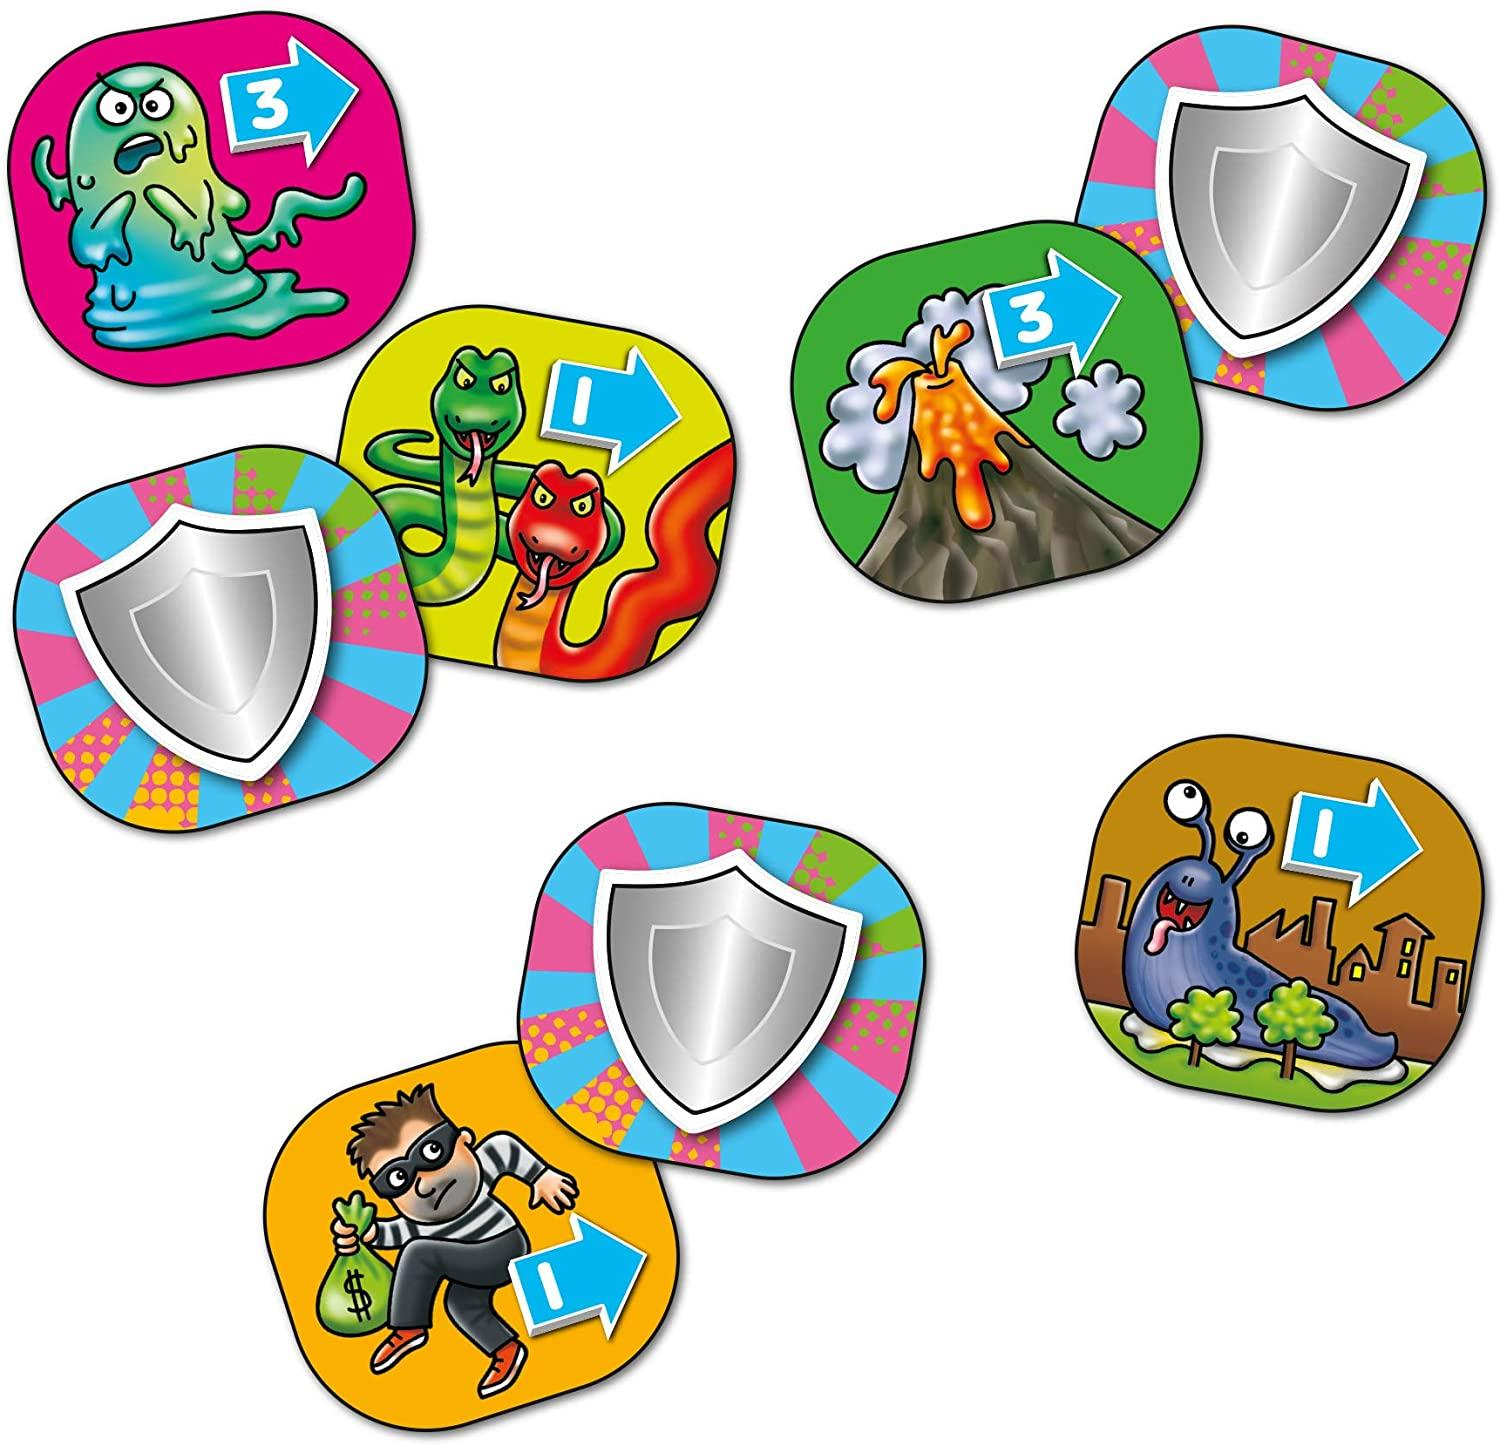 thumbnail 305 - Orchard Toys Educational Games For Kids Choose Game From Drop Down Menu